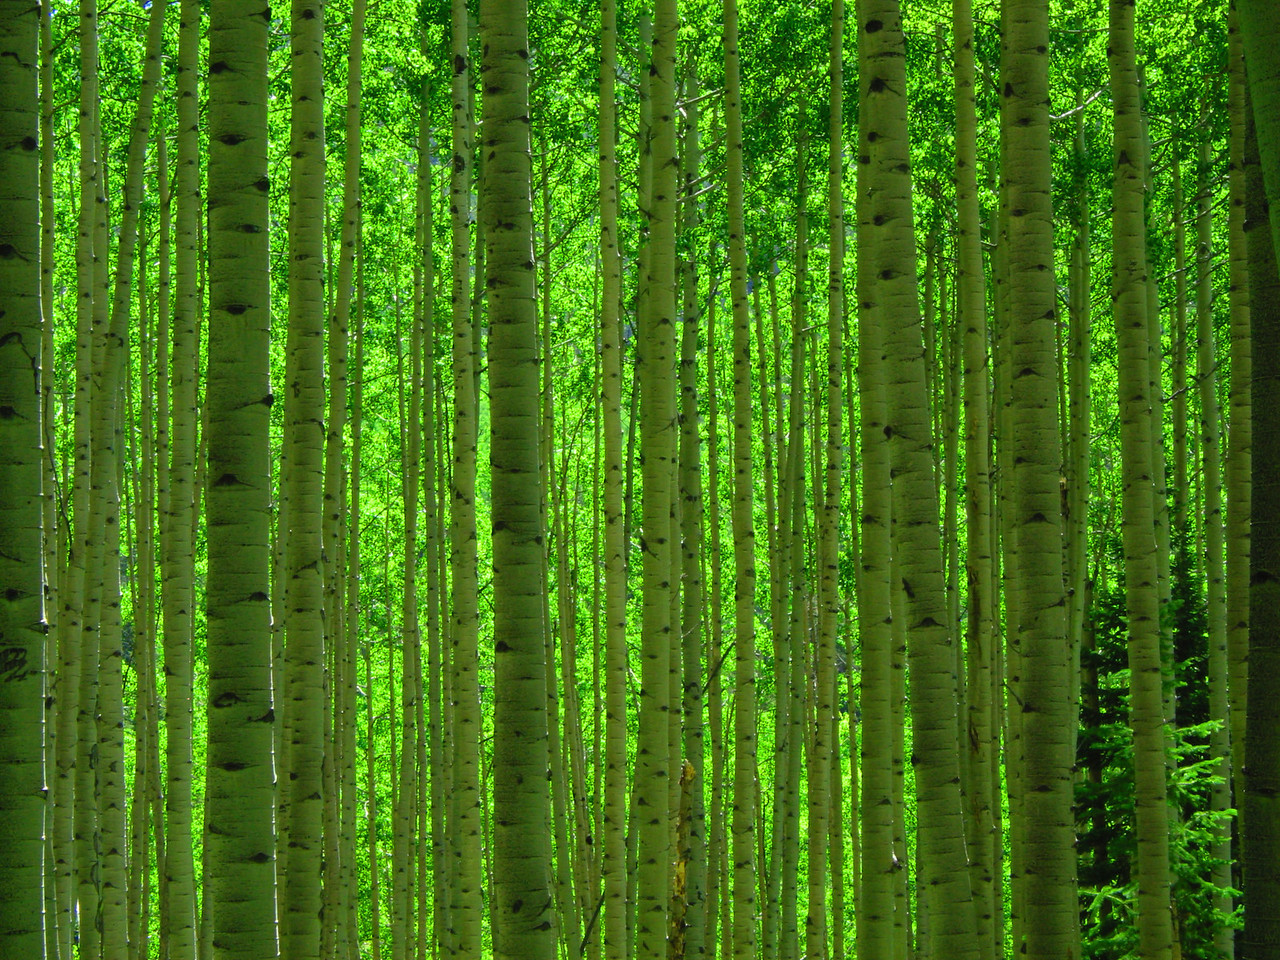 Aspen grove along Ohio Pass just outside of Crested Butte, CO